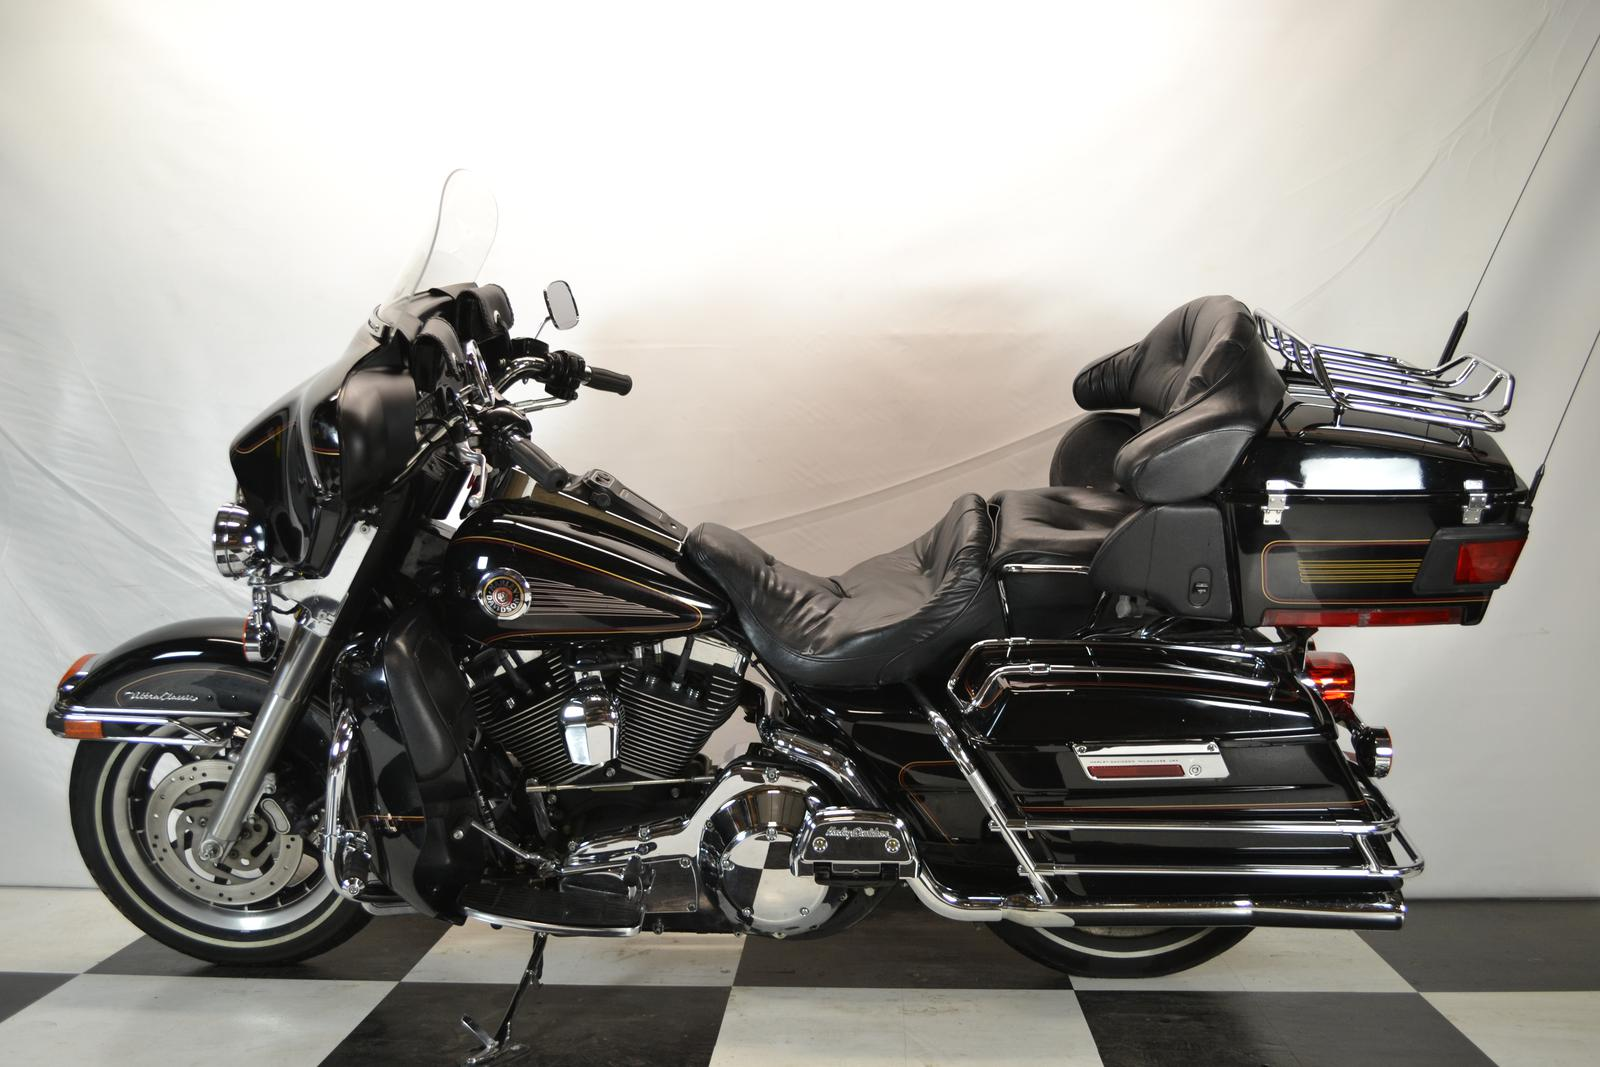 2000 Harley-Davidson FLHDUC, motorcycle listing